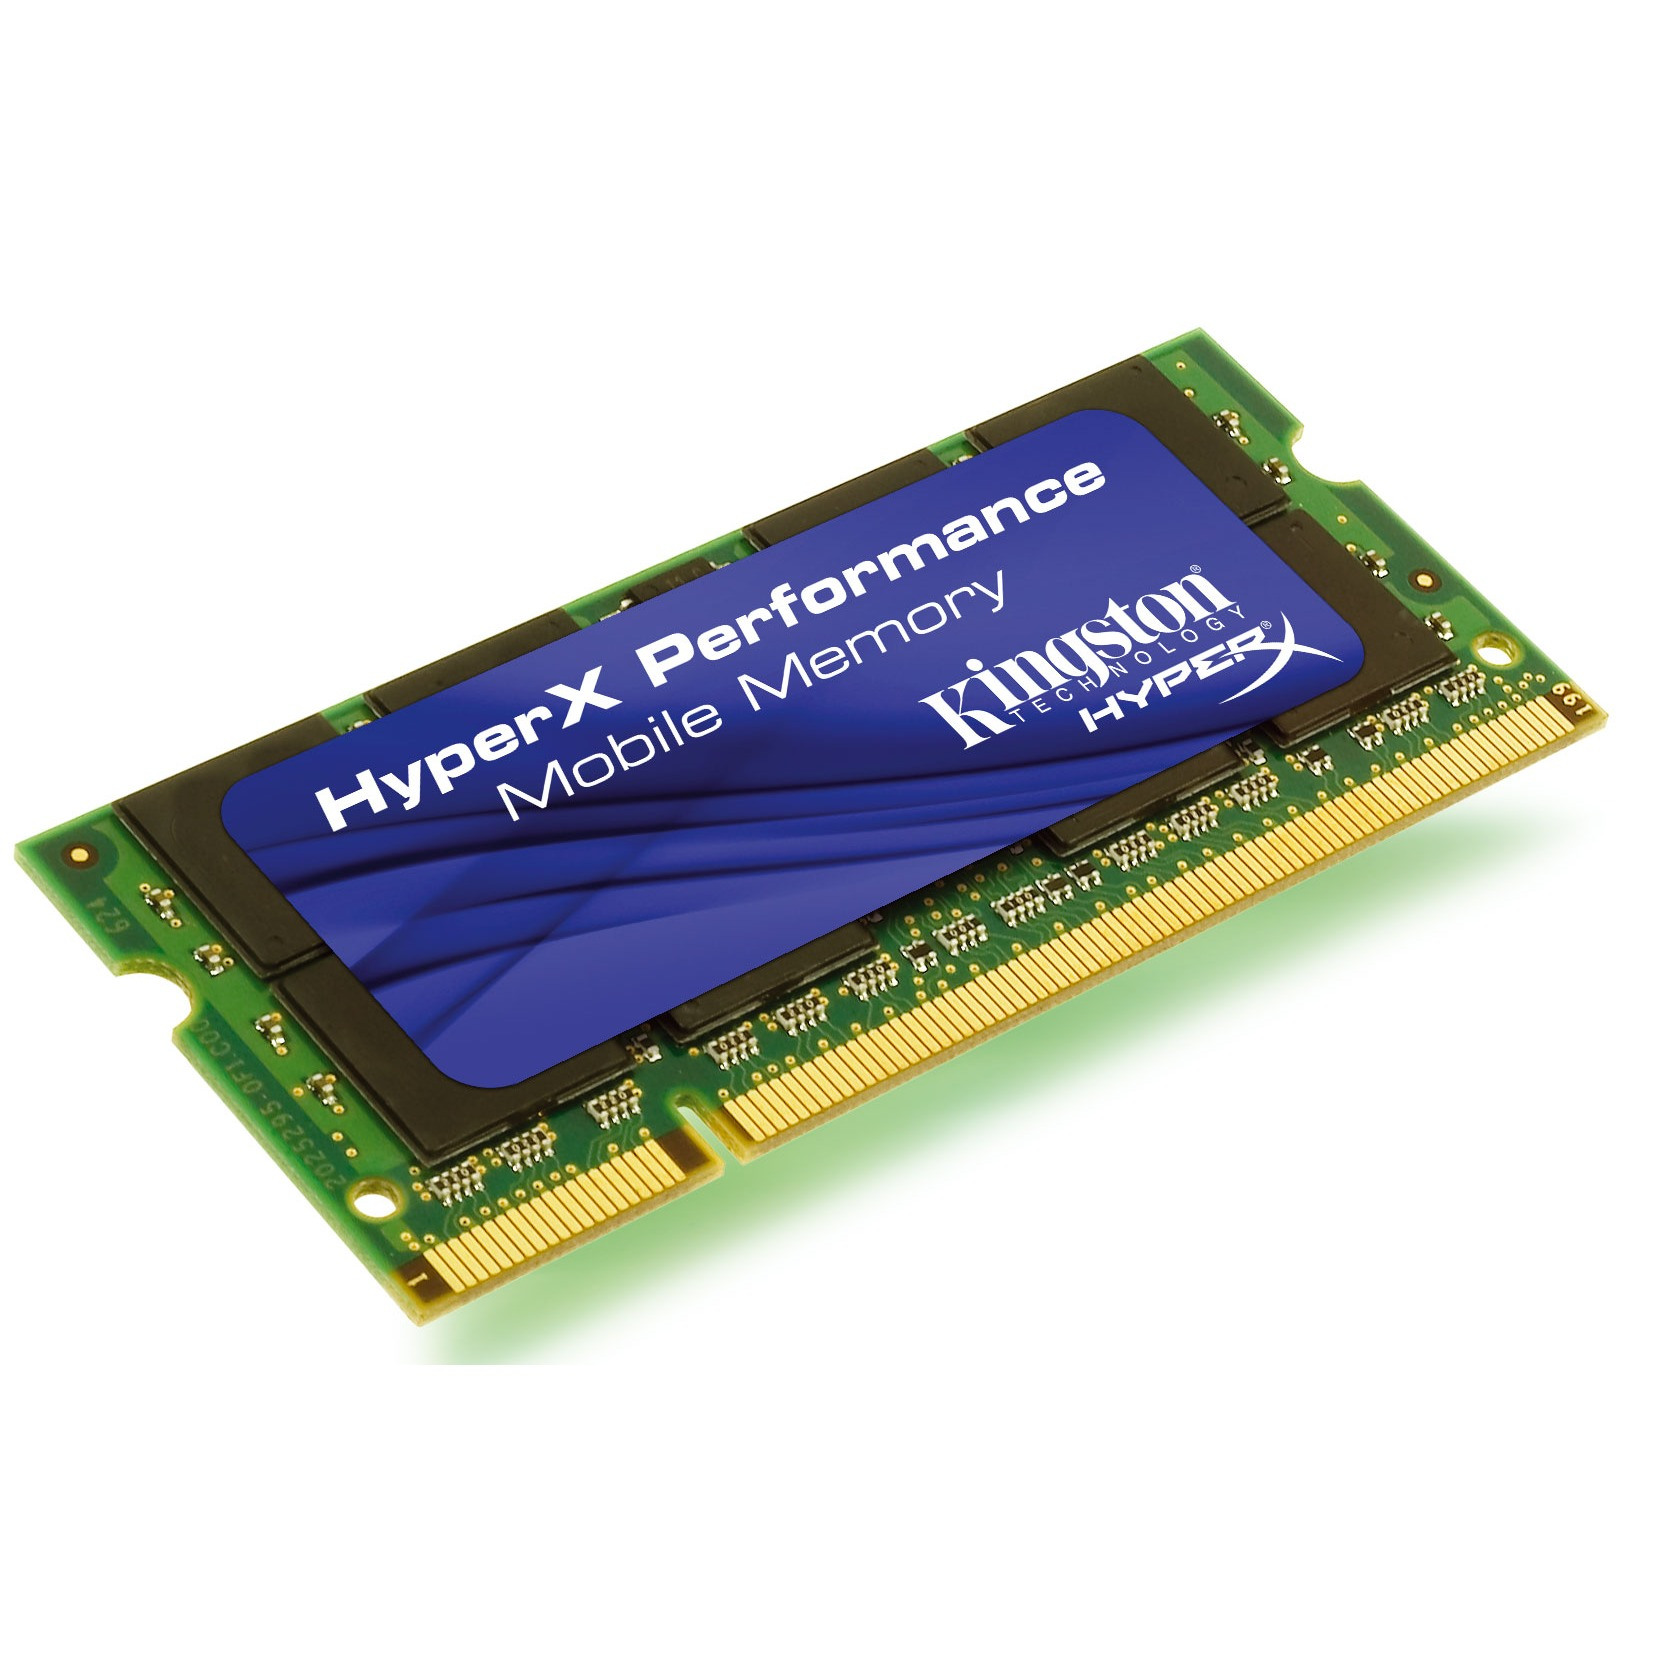 Mémoire PC portable Kingston HyperX Performance SO-DIMM 2 Go DDR2 533 MHz Kingston HyperX Performance SO-DIMM 2 Go DDR2-SDRAM PC4200 CL3 - KHX4200S2LL/2G (garantie 10 ans par Kingston)